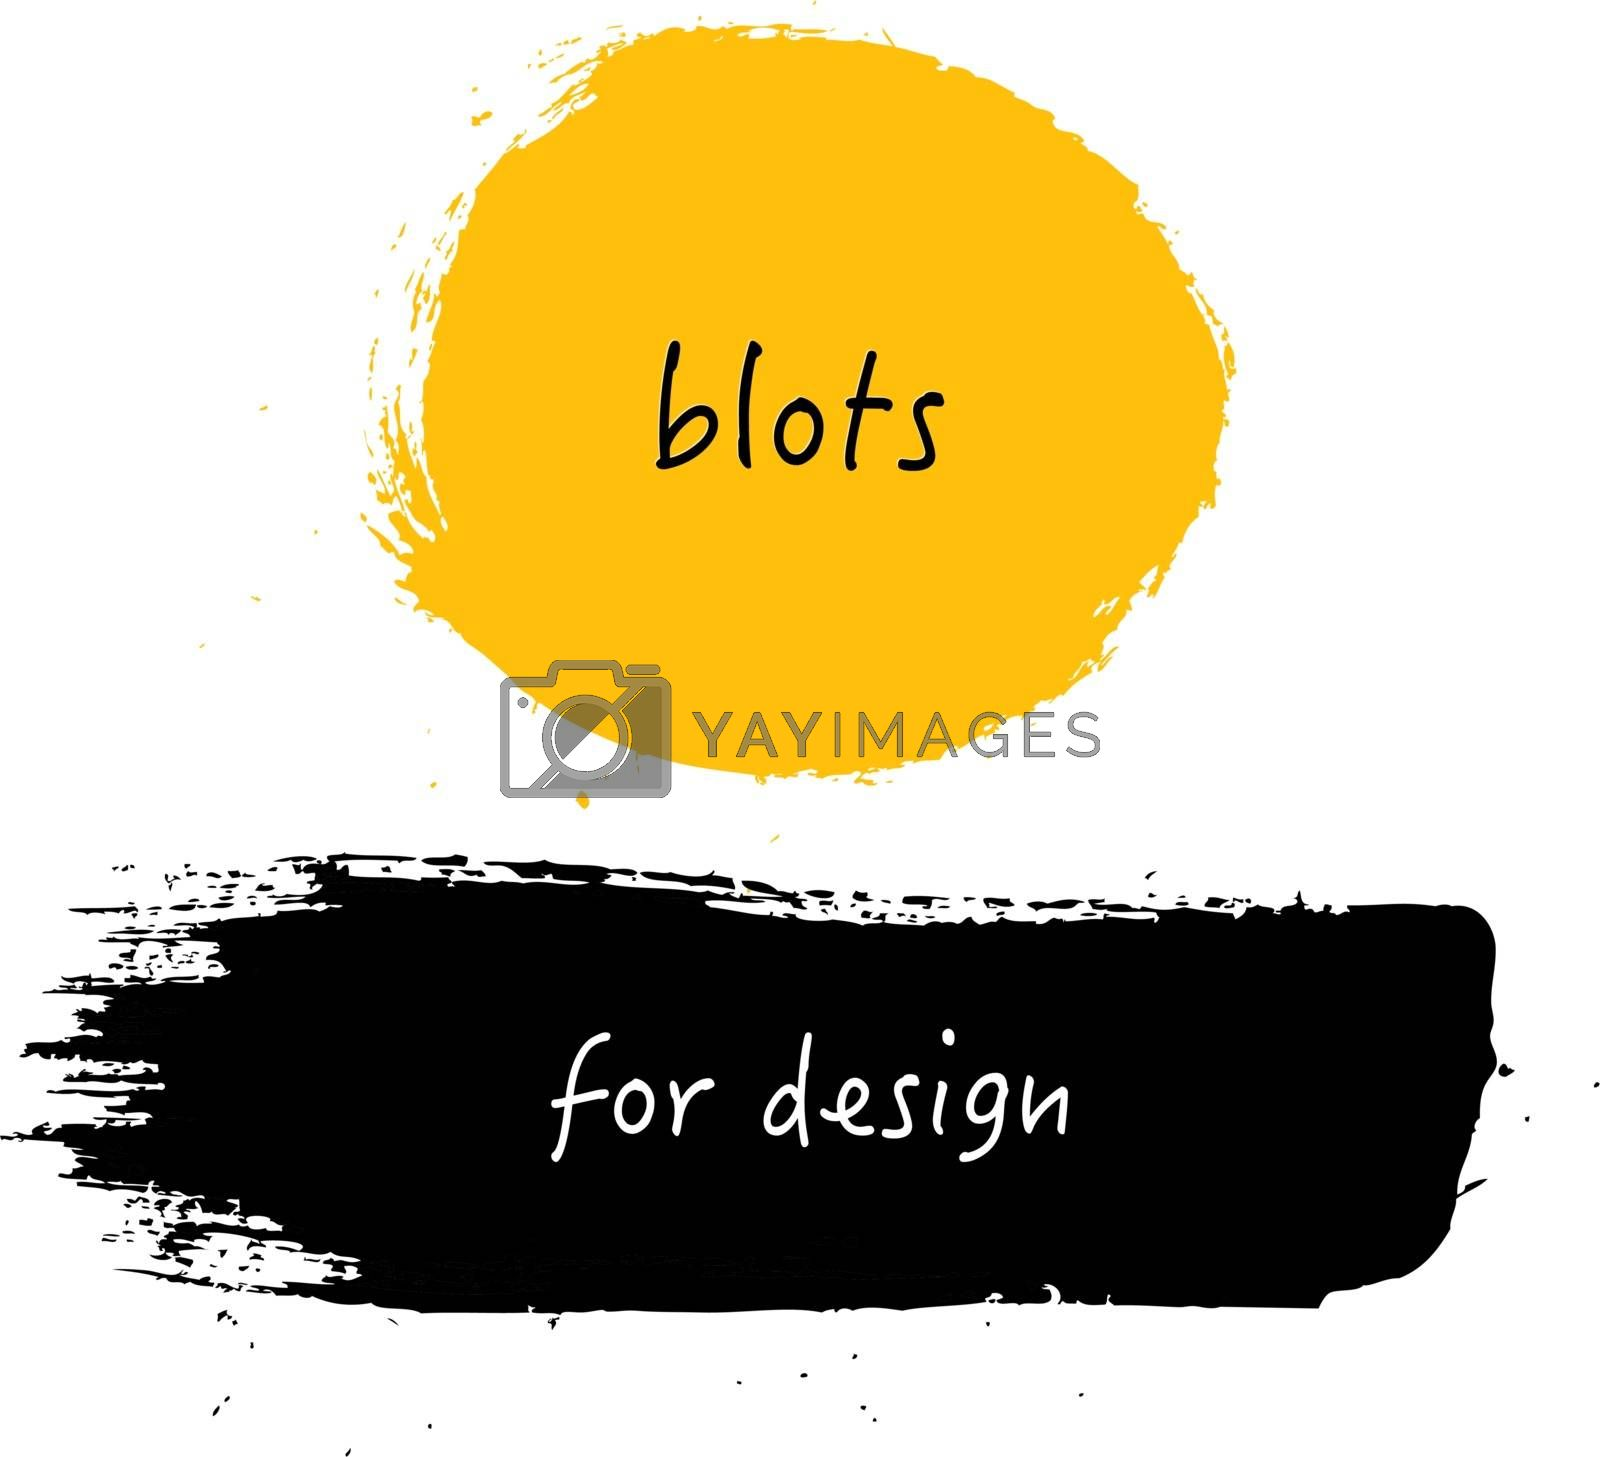 Blots For Design by barbaliss